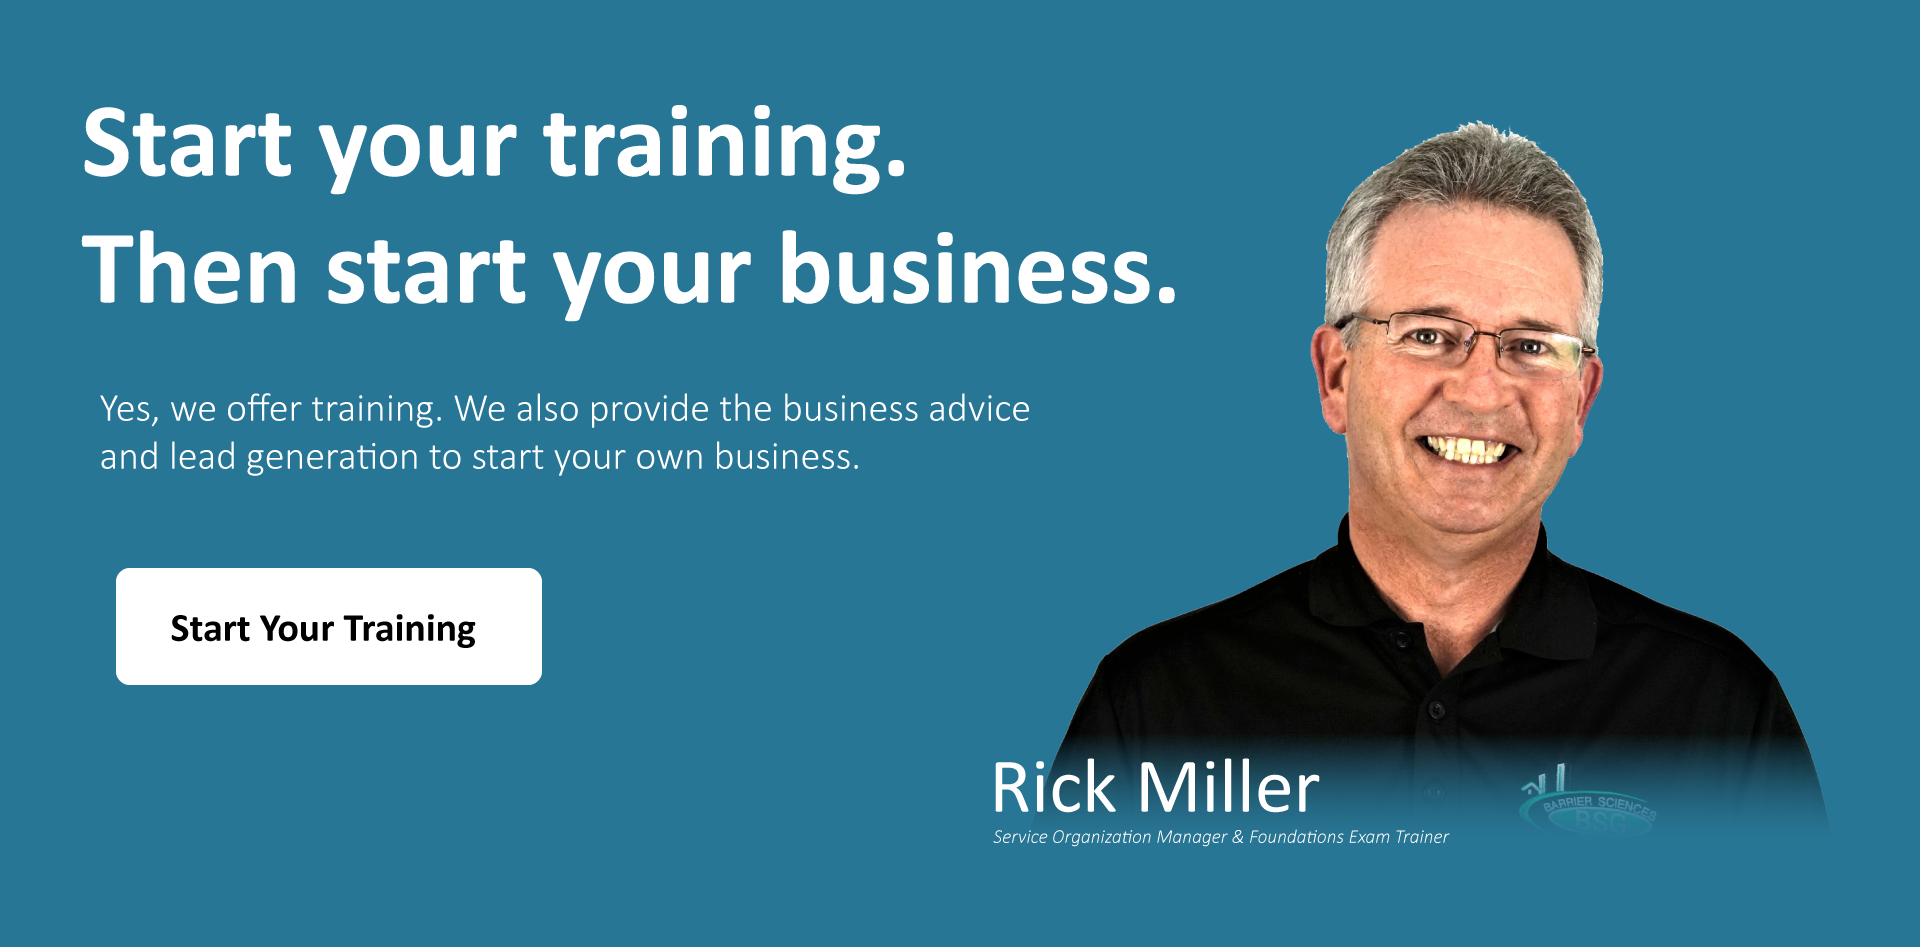 Energy Advisor Training - Rick Miller